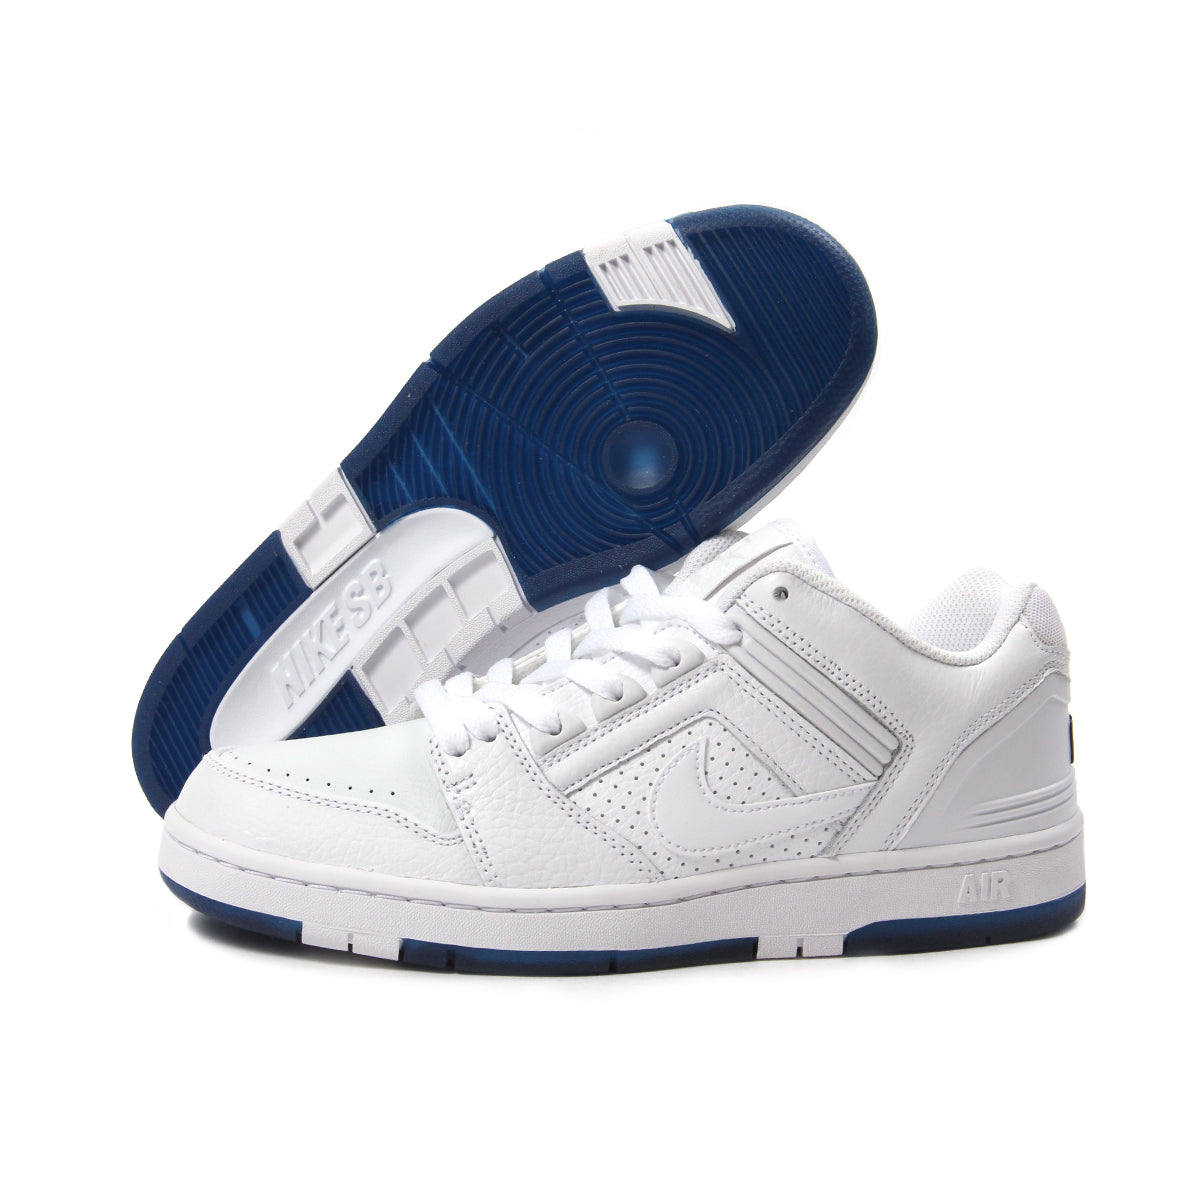 concepts international nike sb air force ii low qs white white blue void. Black Bedroom Furniture Sets. Home Design Ideas